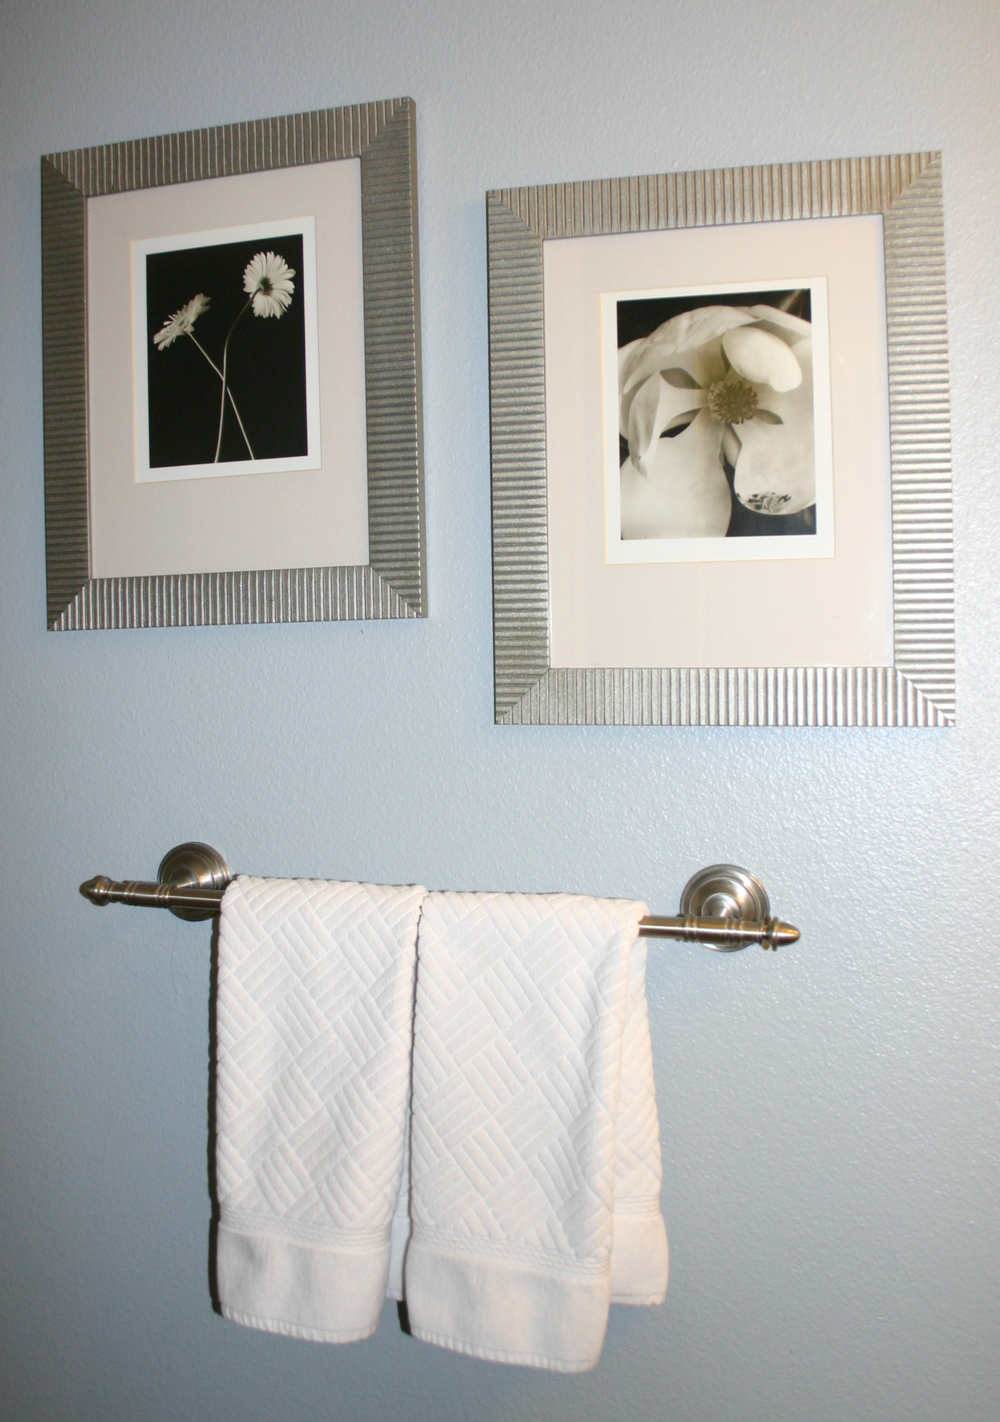 brushed nickel spray paint frames///IMG_1003.JPG | Nella Casa ...